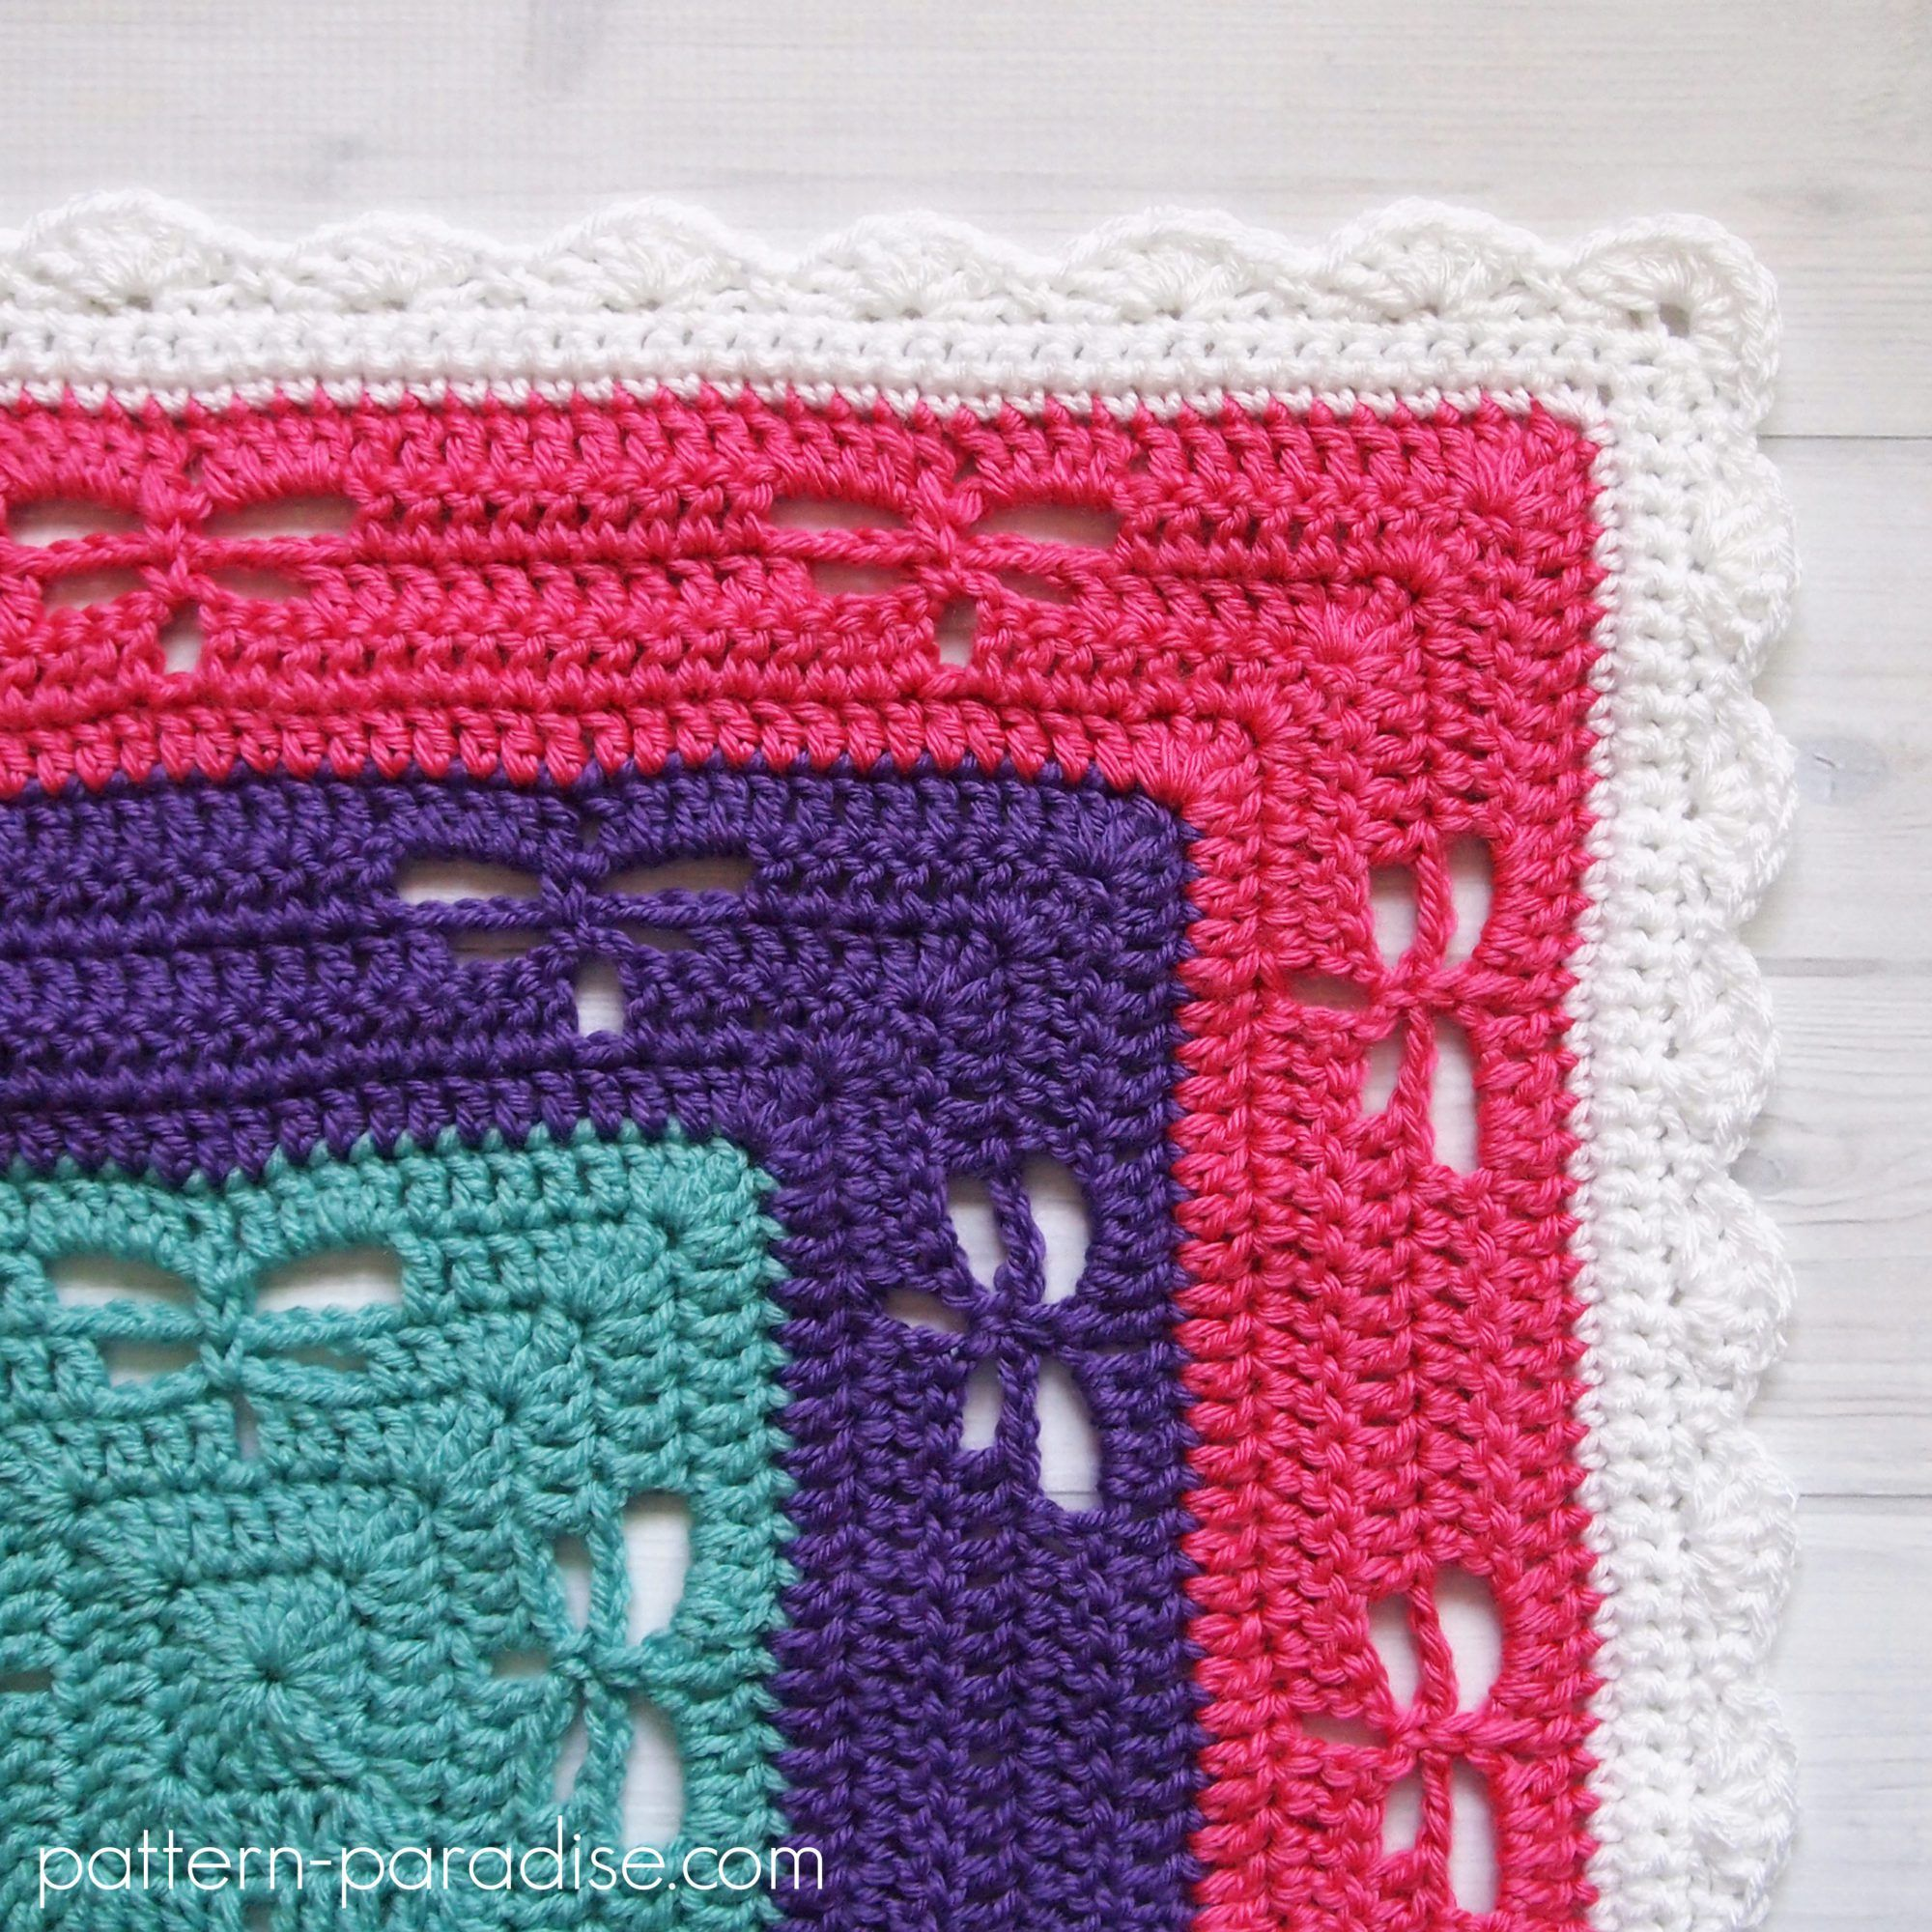 Free Crochet Pattern: Radiating Dragonflies Throw | yarn :3 ...